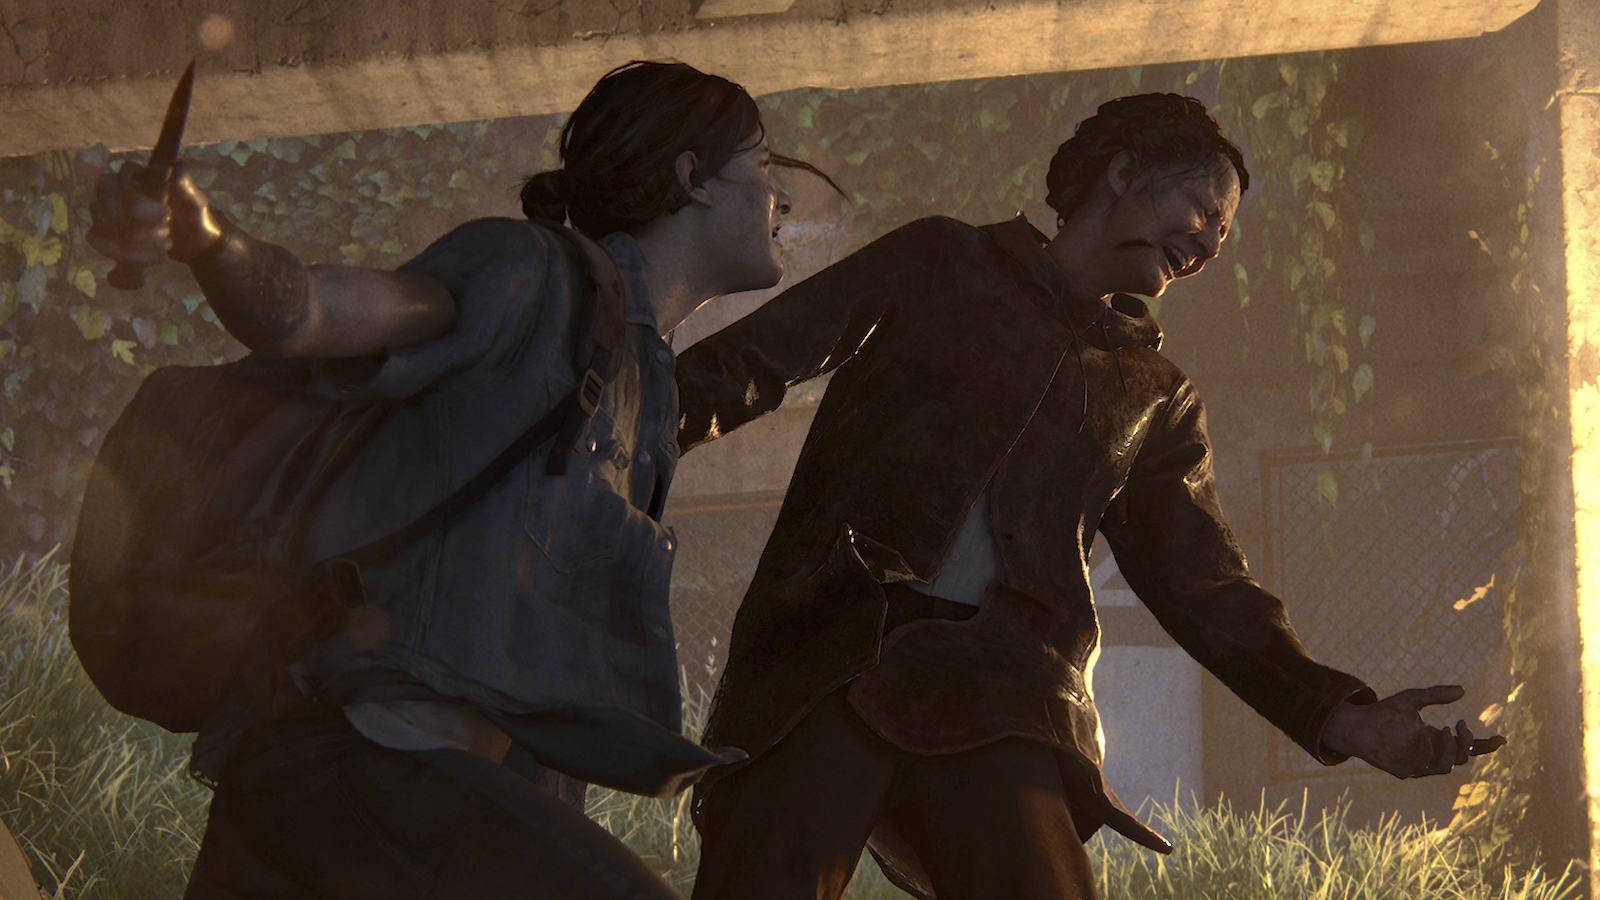 The Last Of Us Part II's Violence Is Designed To Be Repulsive